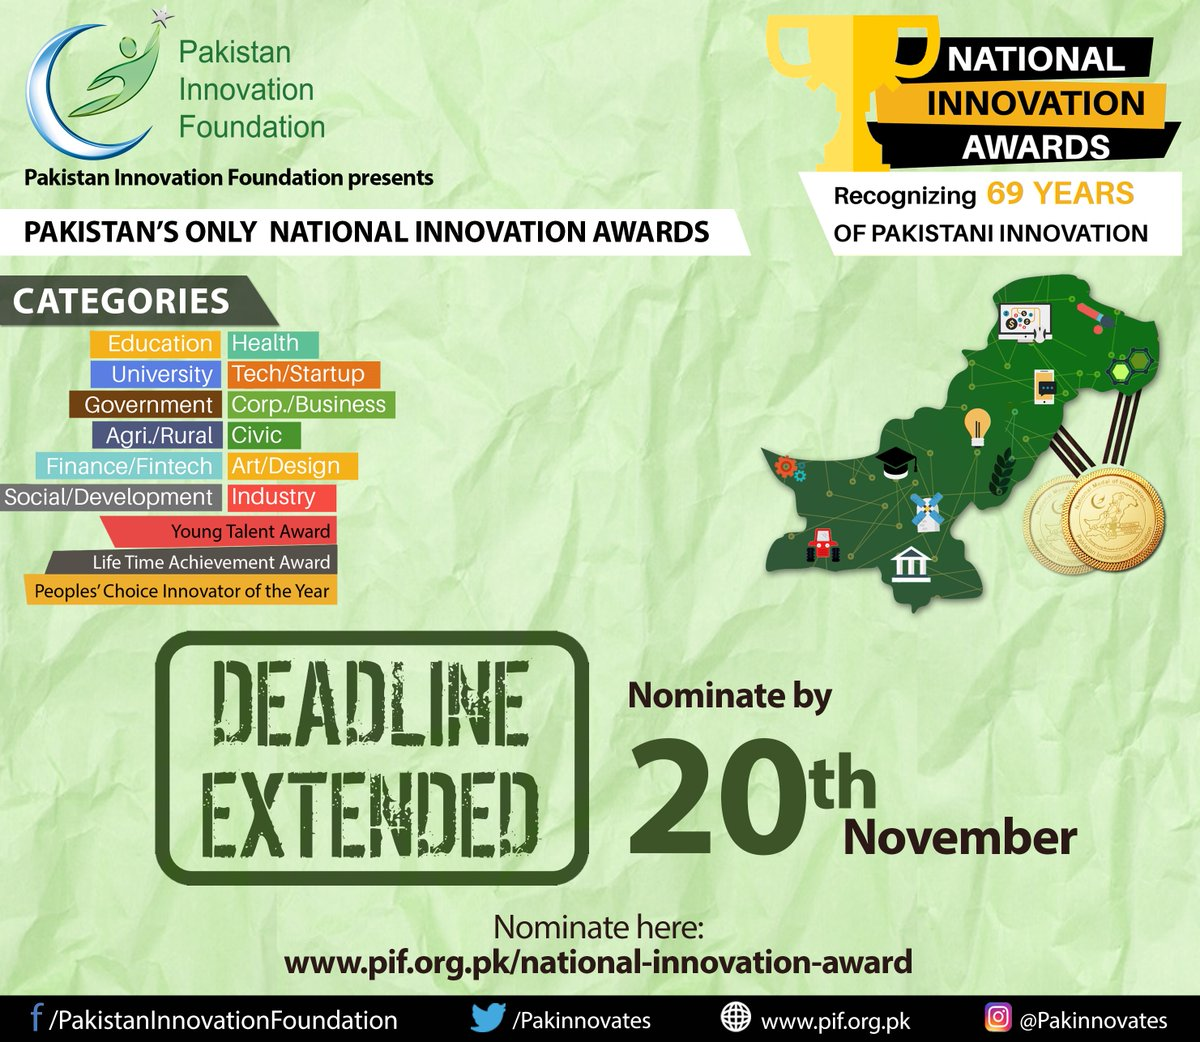 National Innovation Awards